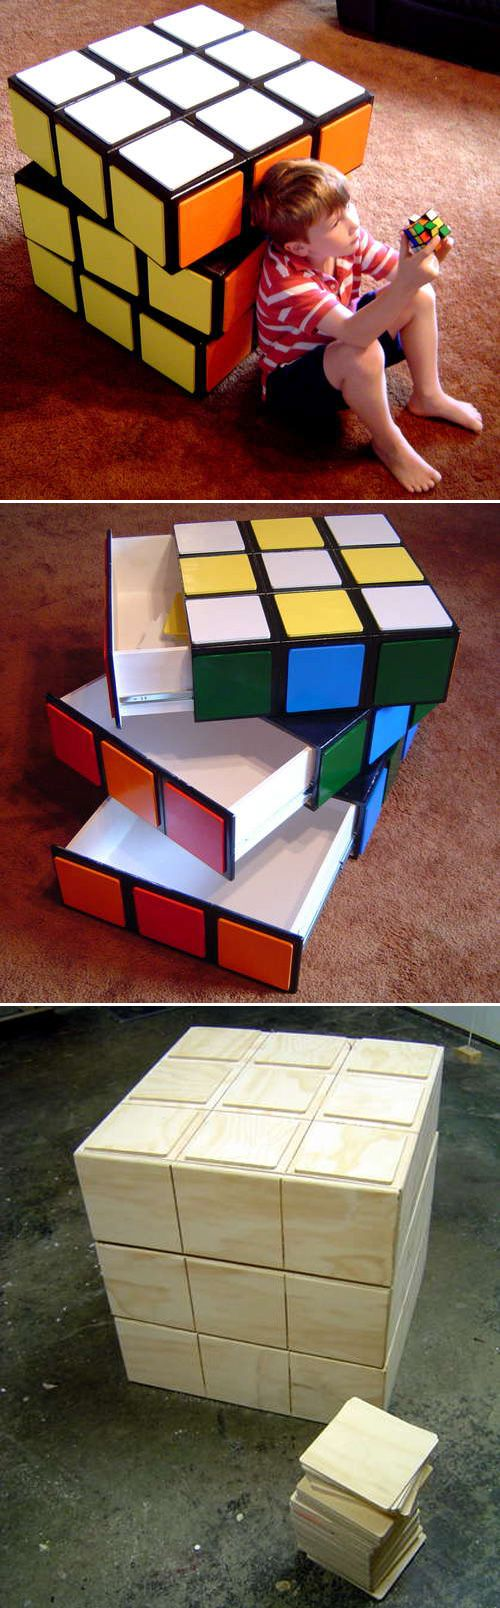 Awesome game room storage bin! Cubo di Rubik porta giochi: